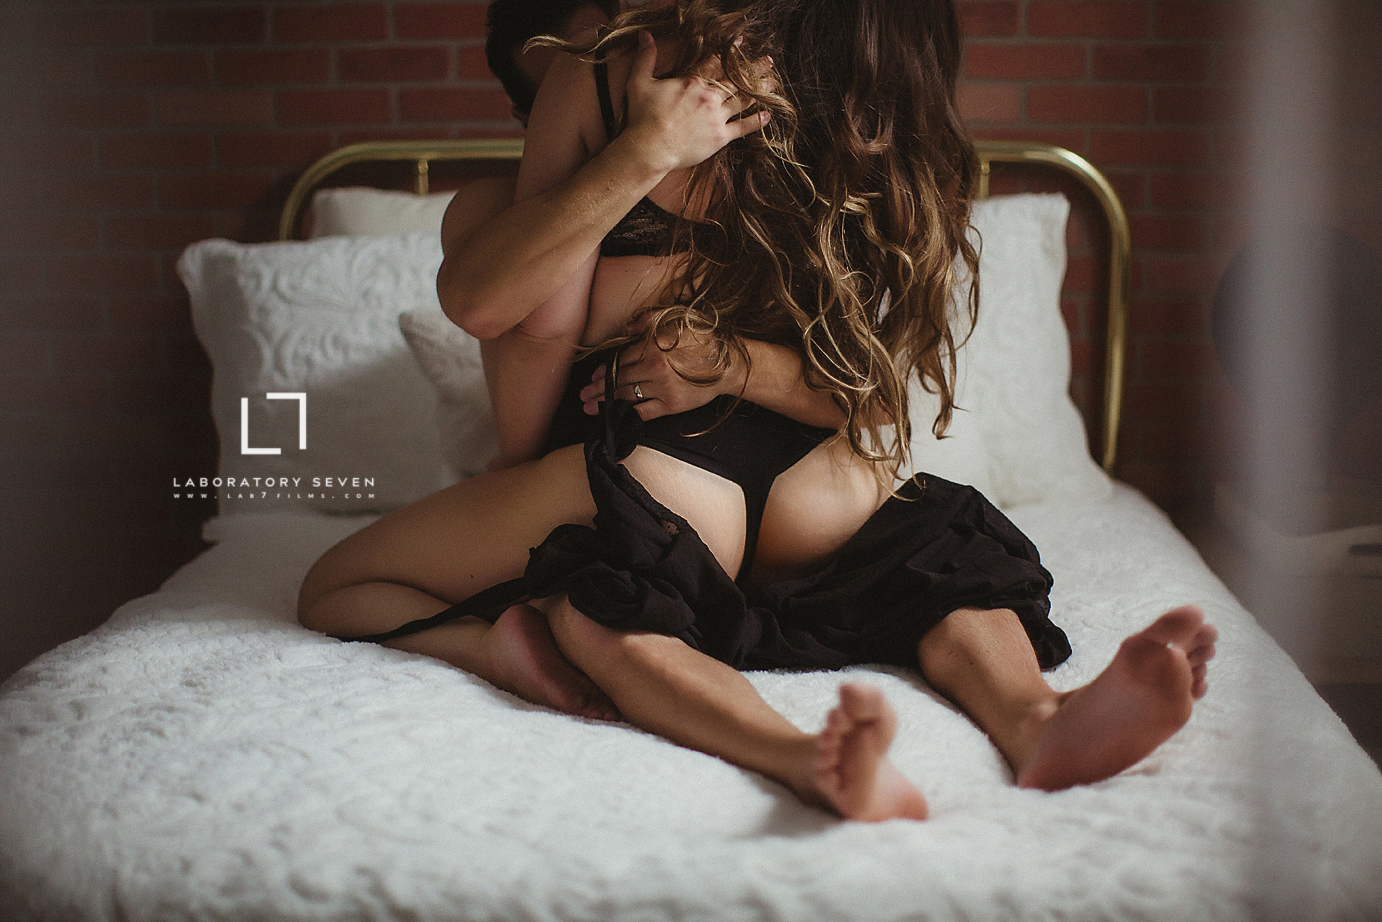 oc-couples-boudoir-studio-husband-and-wife-sexy-photoshoot-bedroom-butt-fantasy-passionate-sensual.jpg